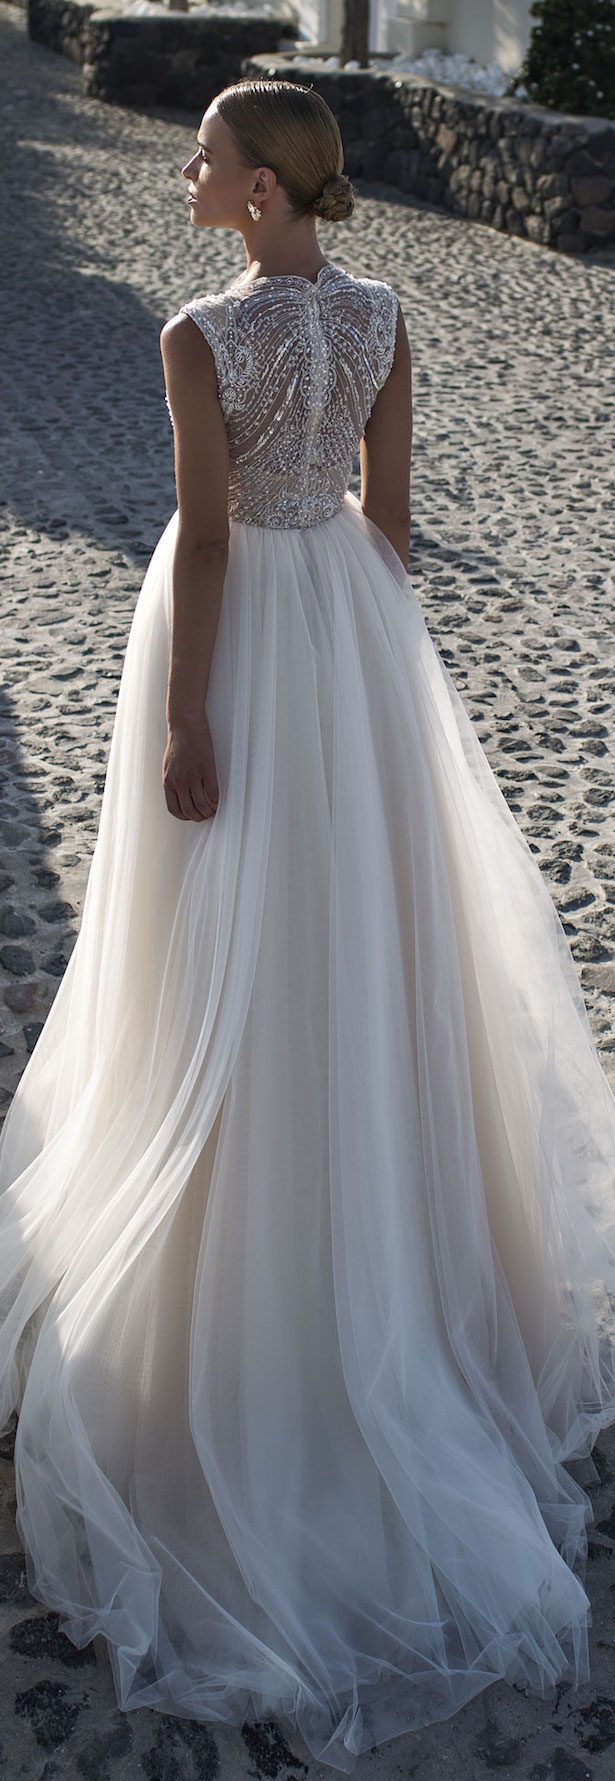 Best Wedding Dresses of 2016 - Julie Vino 2016 - Santorini Collection